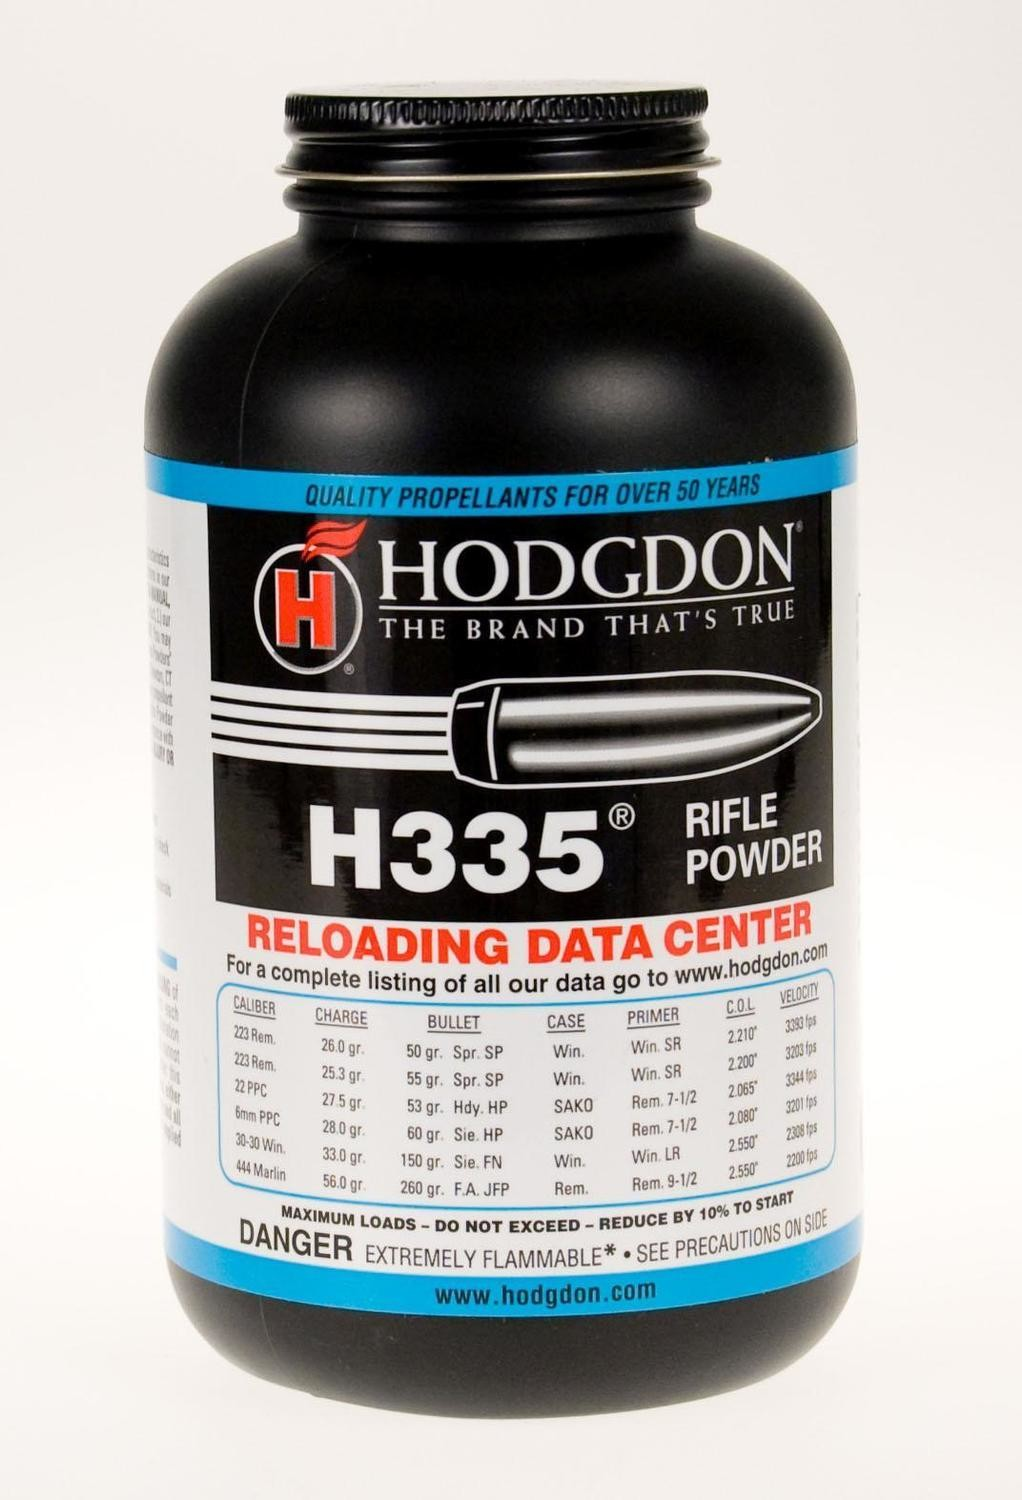 HODGDON H335 RIFLE BALL POWDER - 1LB